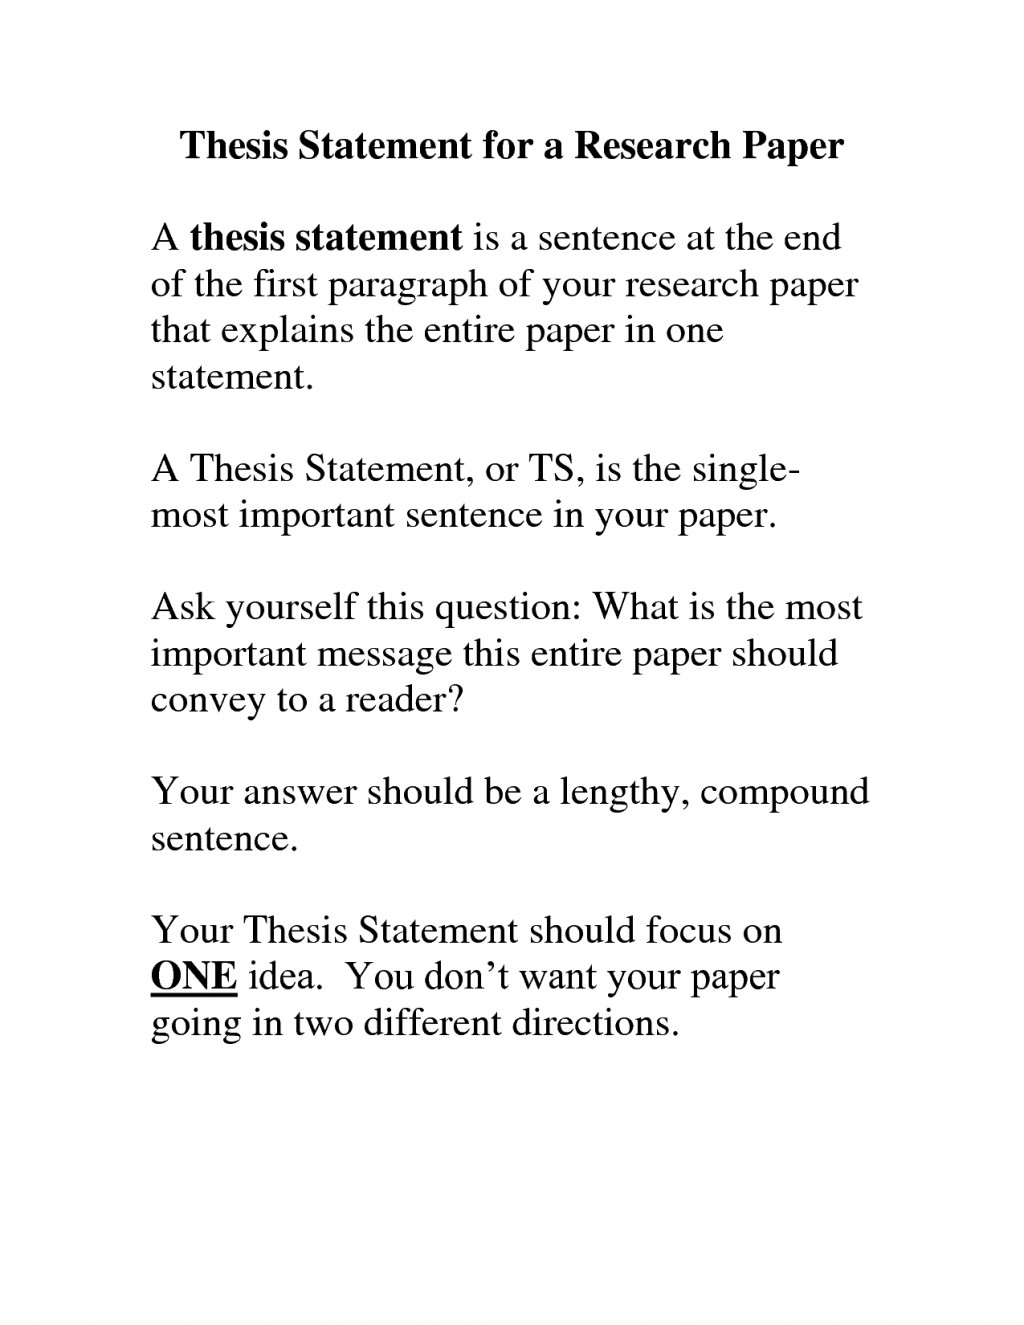 001 Research Paper Thesis Frightening Statement Informative Examples Generator Large